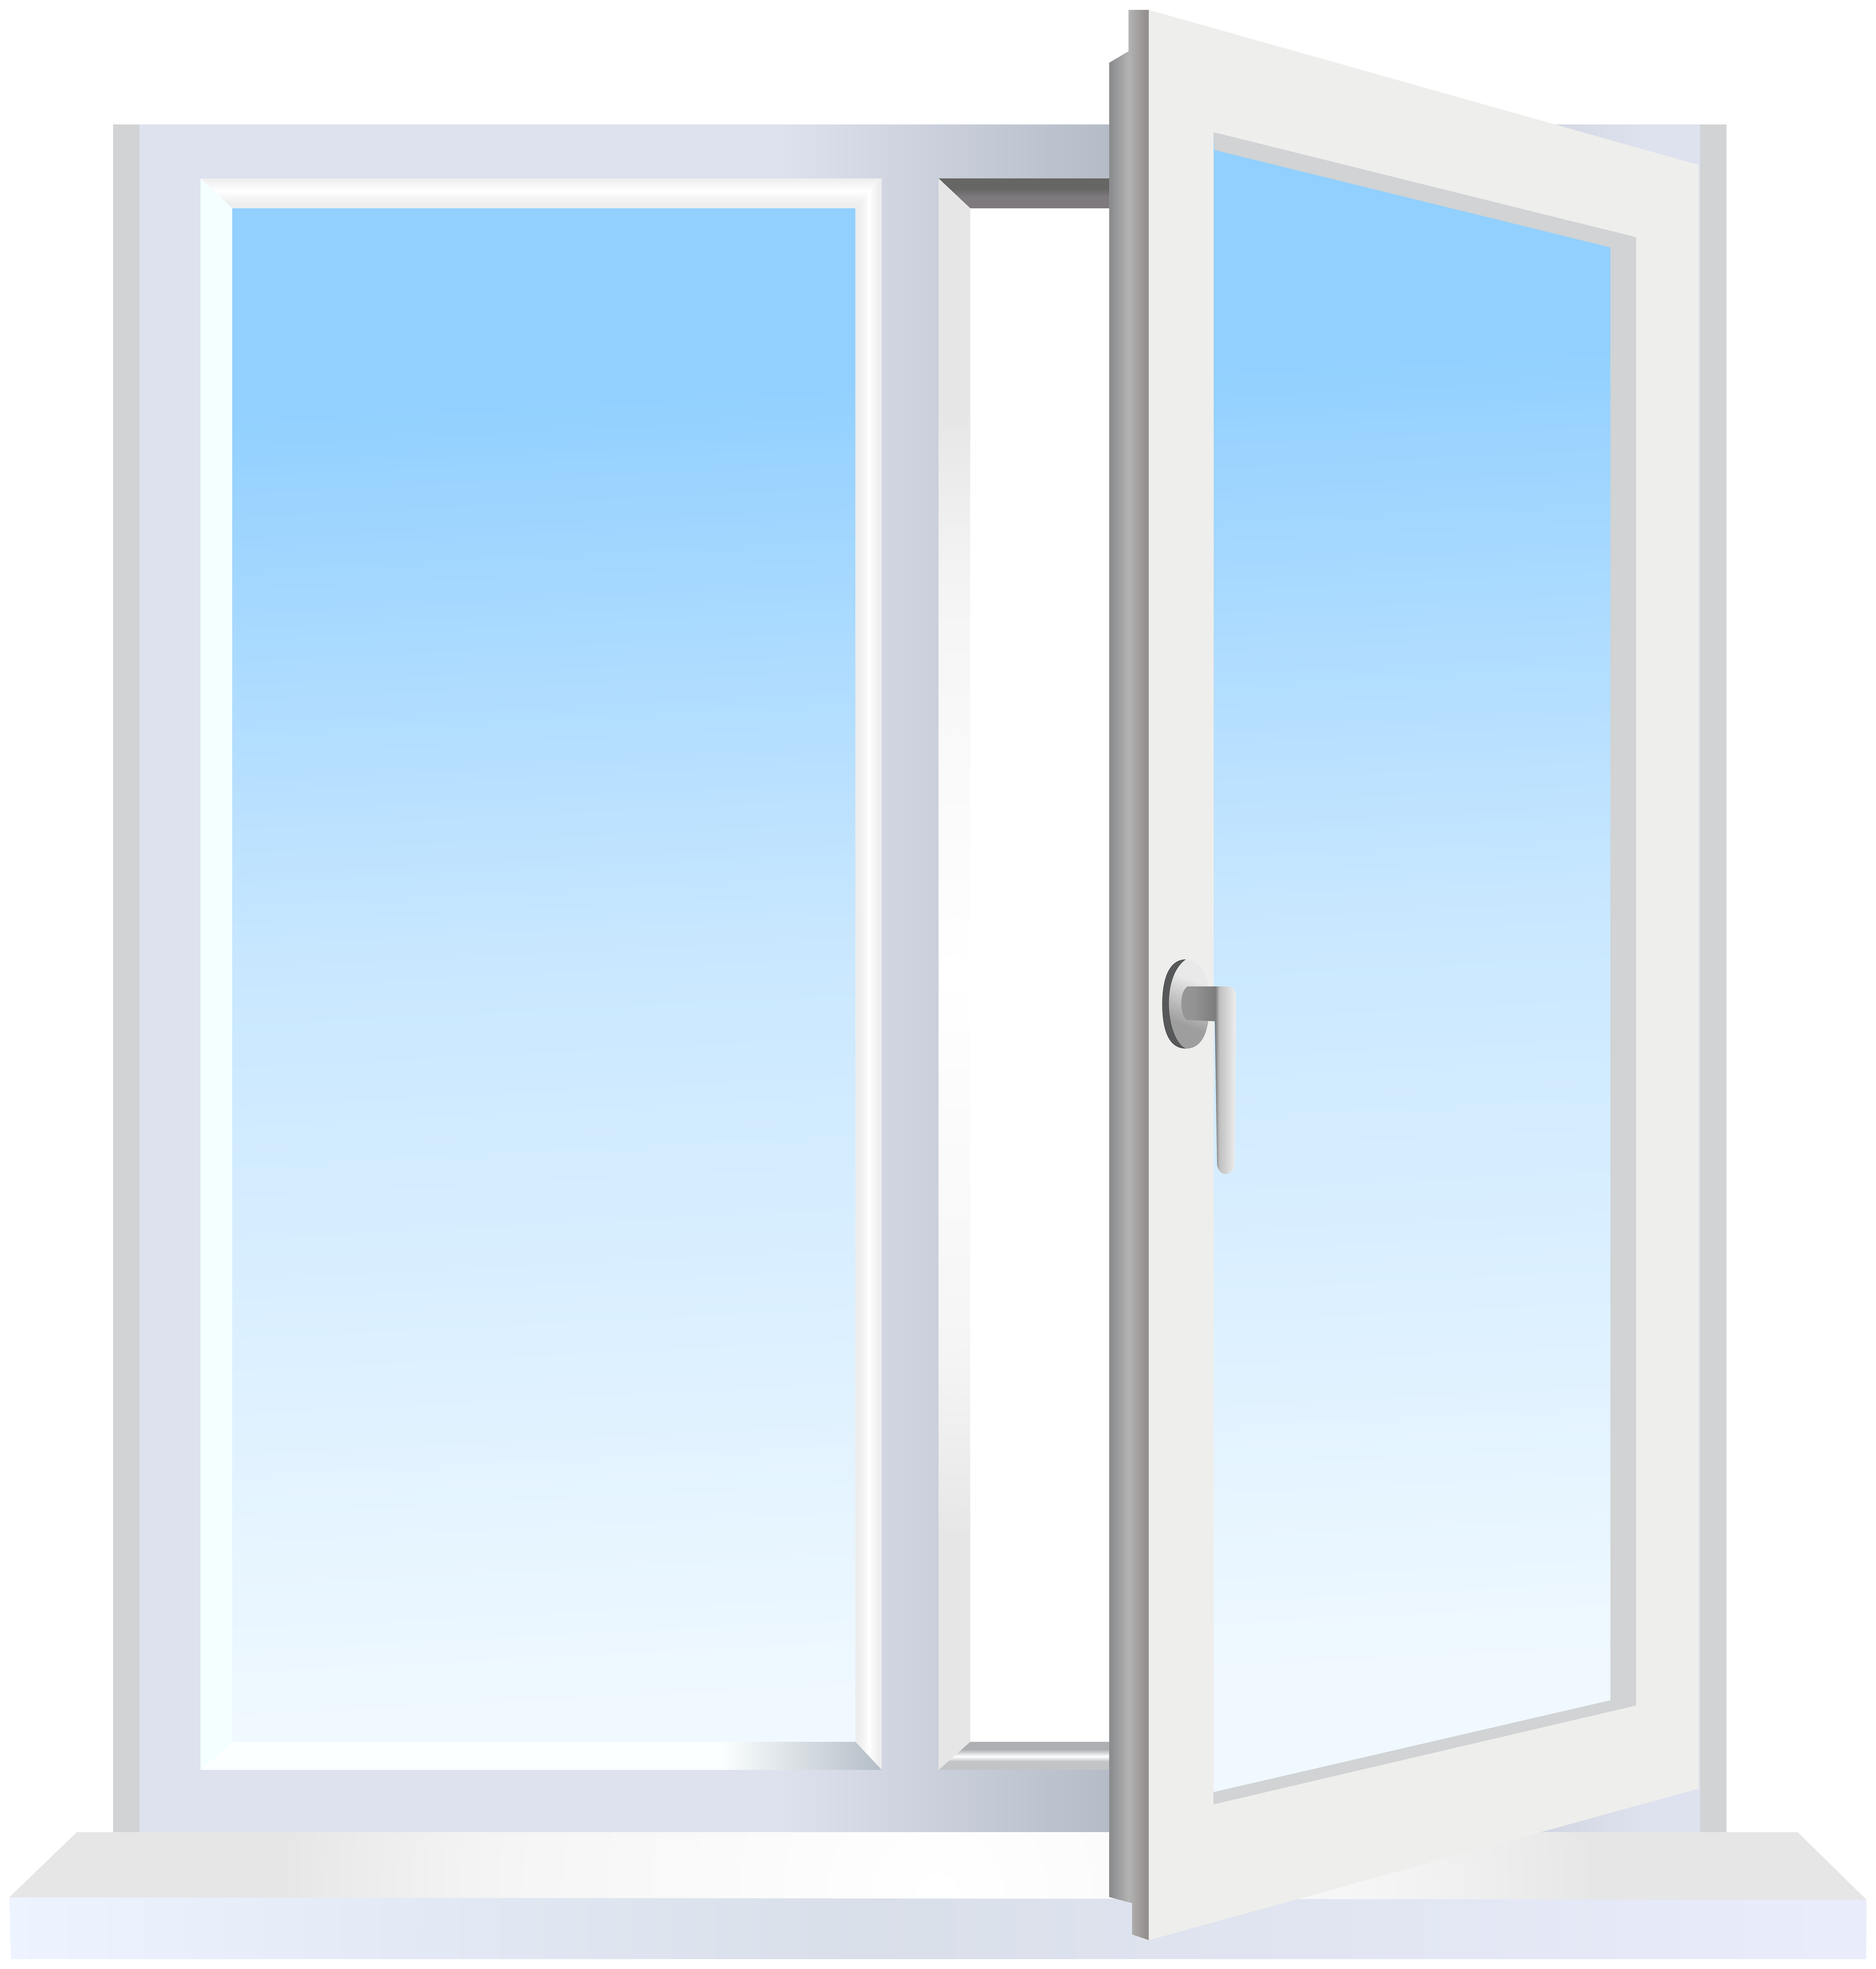 Window view clipart clipart royalty free library Open Window PNG Clip Art - Best WEB Clipart clipart royalty free library